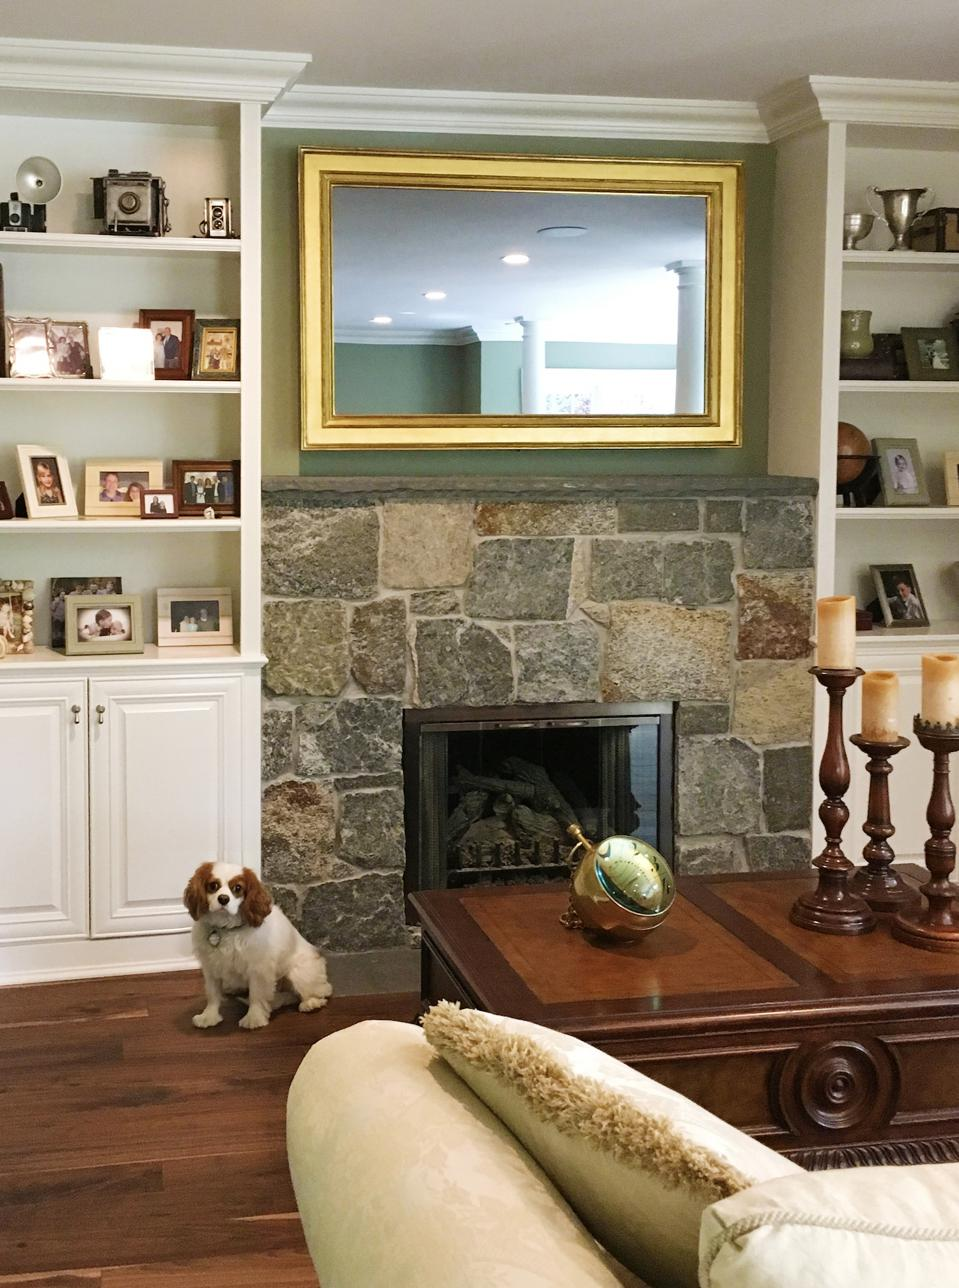 One of the most popular places for these units is over the fireplace.